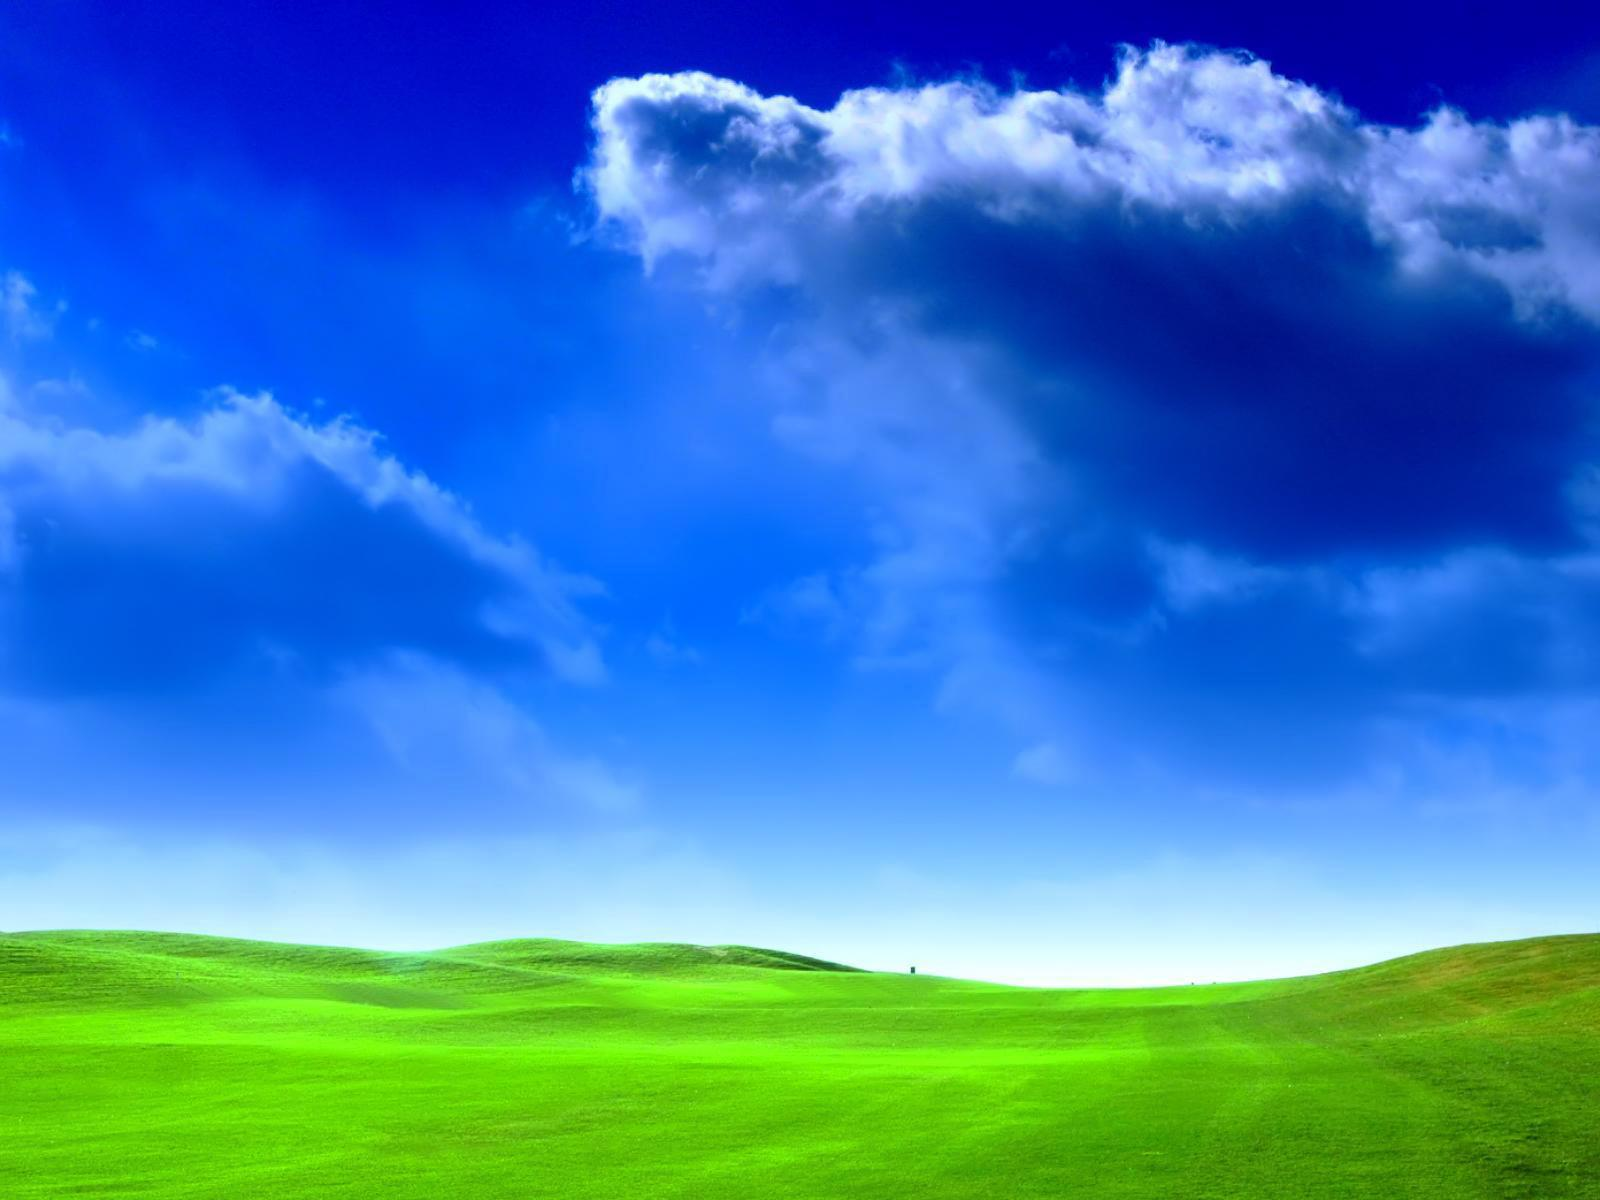 High Resolution Desktop Wallpapers For Windows Xp ...